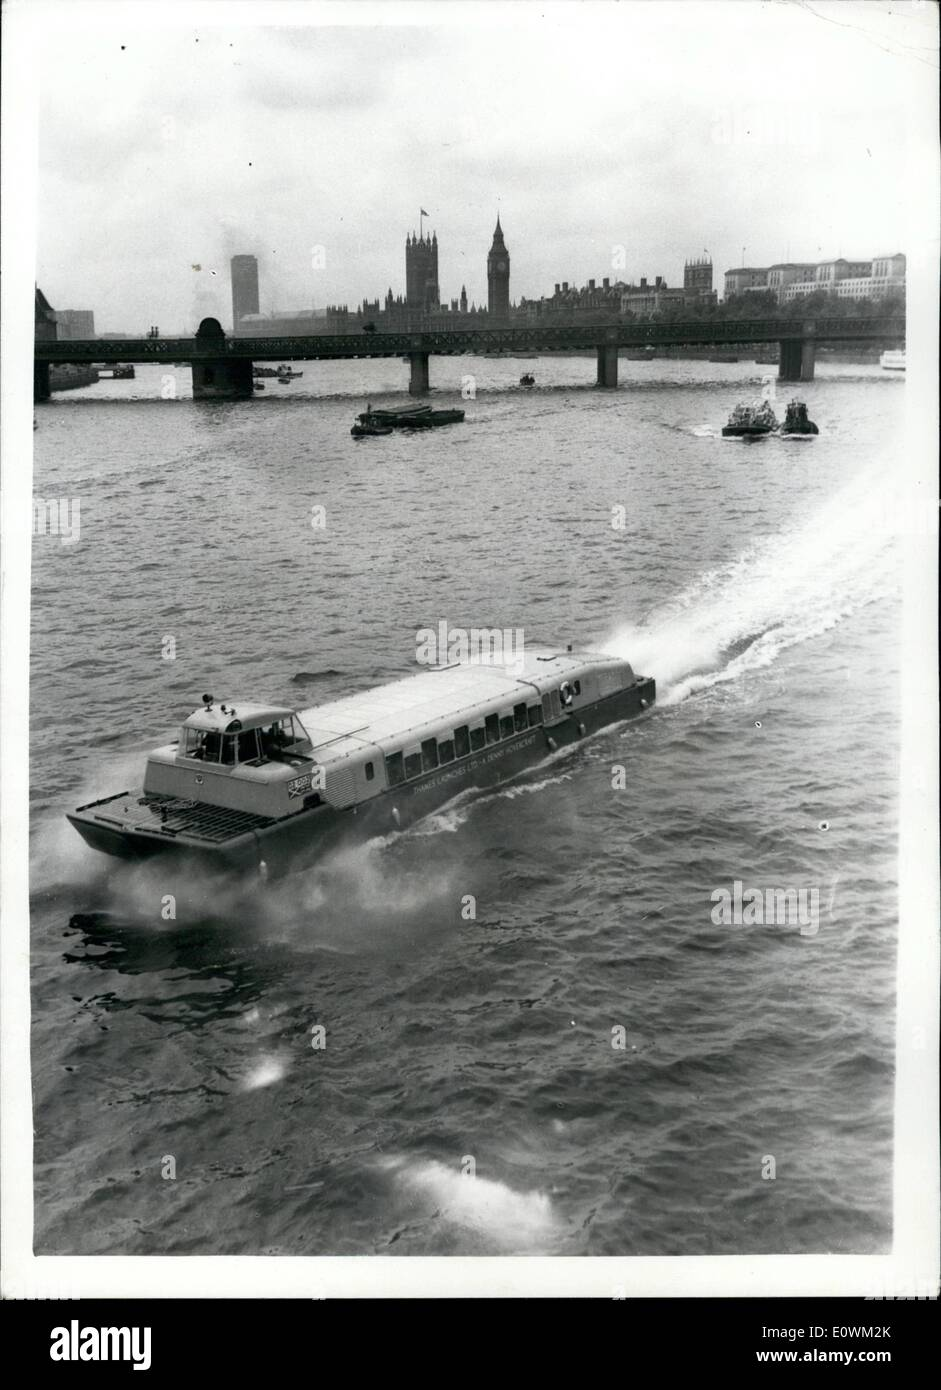 Jul. 07, 1963 - Seventy Seater Hoverbest passenger service inaugurated on the River Thames. This morning Sir Ralph perring the Lard Mayor of London and Lady Perring were passengers aboard the 70 seater D.2. Denny Hoverbus when is made its first official appearance on the River Thames. A Number of other V.IP's took part in the trip from the Royal festival Hall to tower Pier. A bar is being fitted in the craft and Londoners and visitors will be able to make trips from Festival Pier at a time. Photo shows Looking down on the D2 - Stock Image